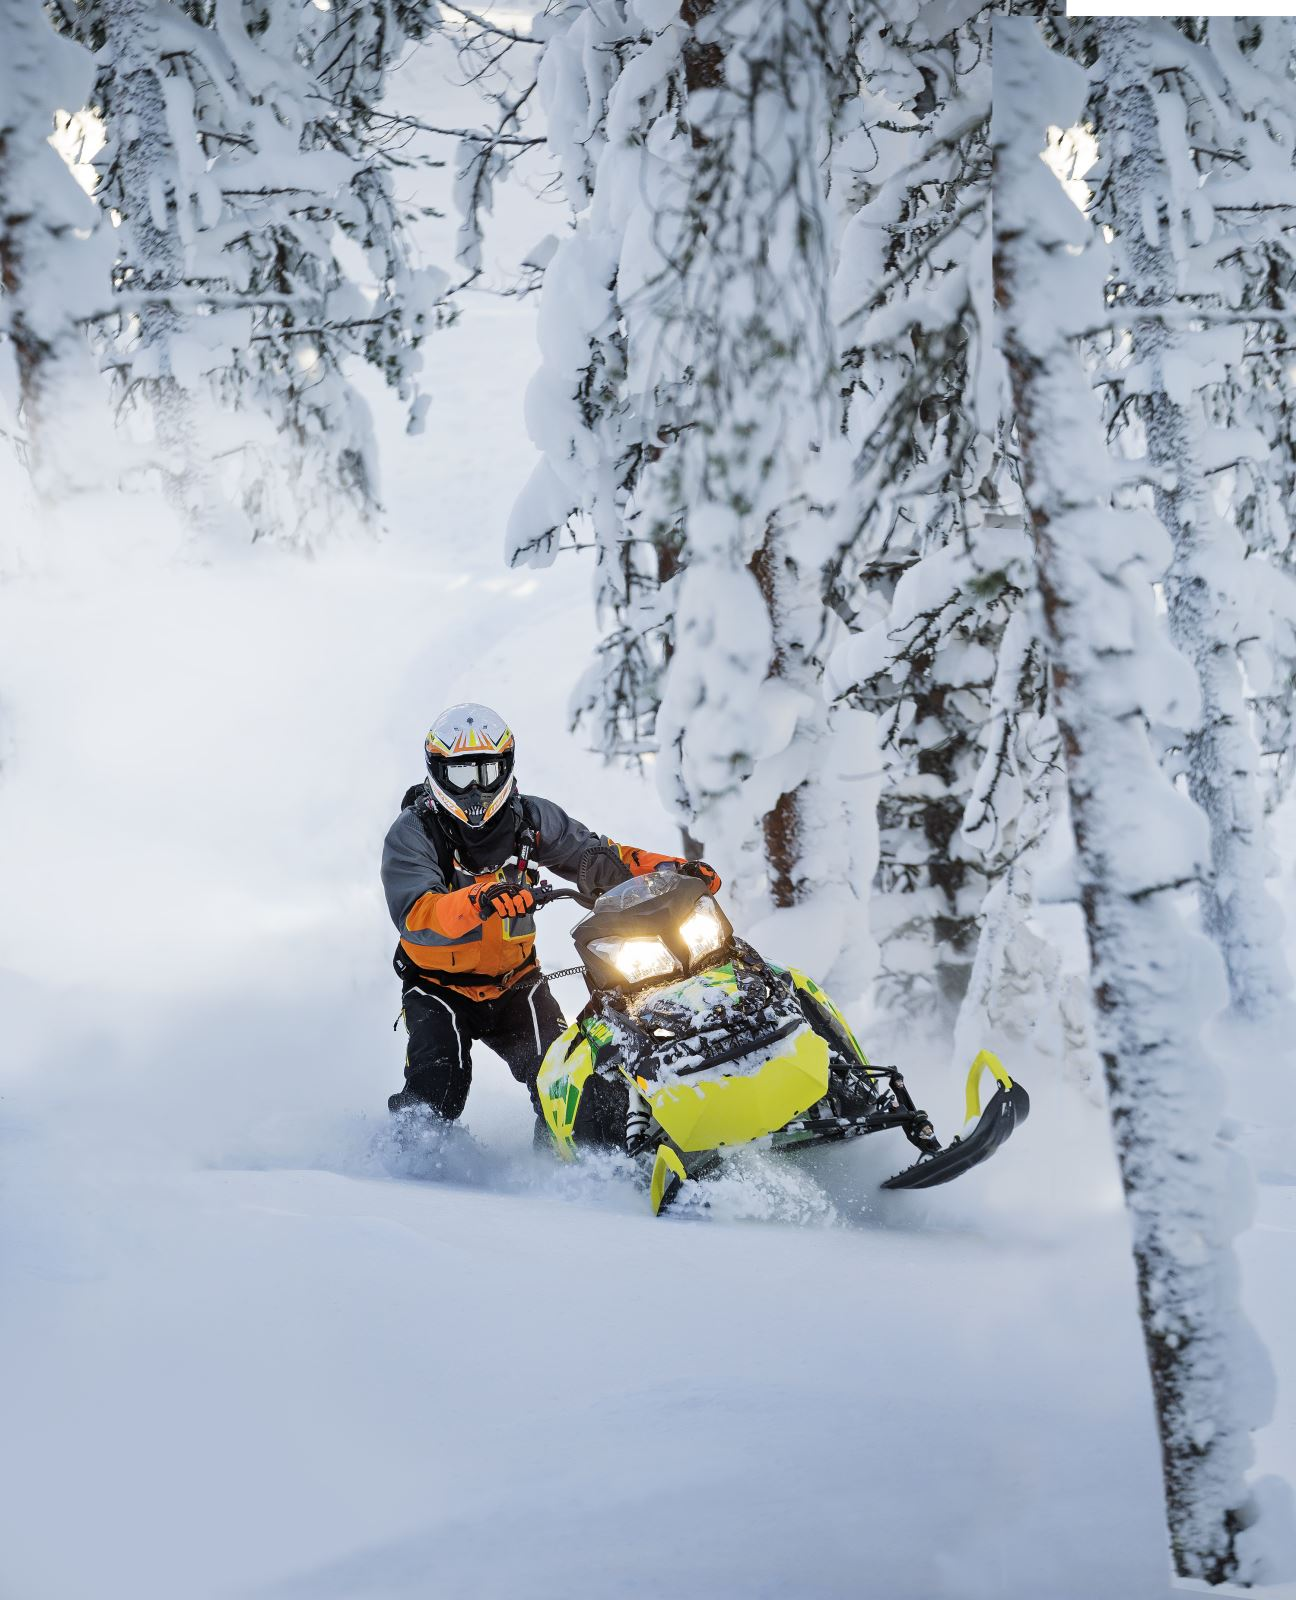 BRP s 2016 Lynx Snowmobiles Offer The Ultimate Winter Adventures In ... 3bab04e4c148b